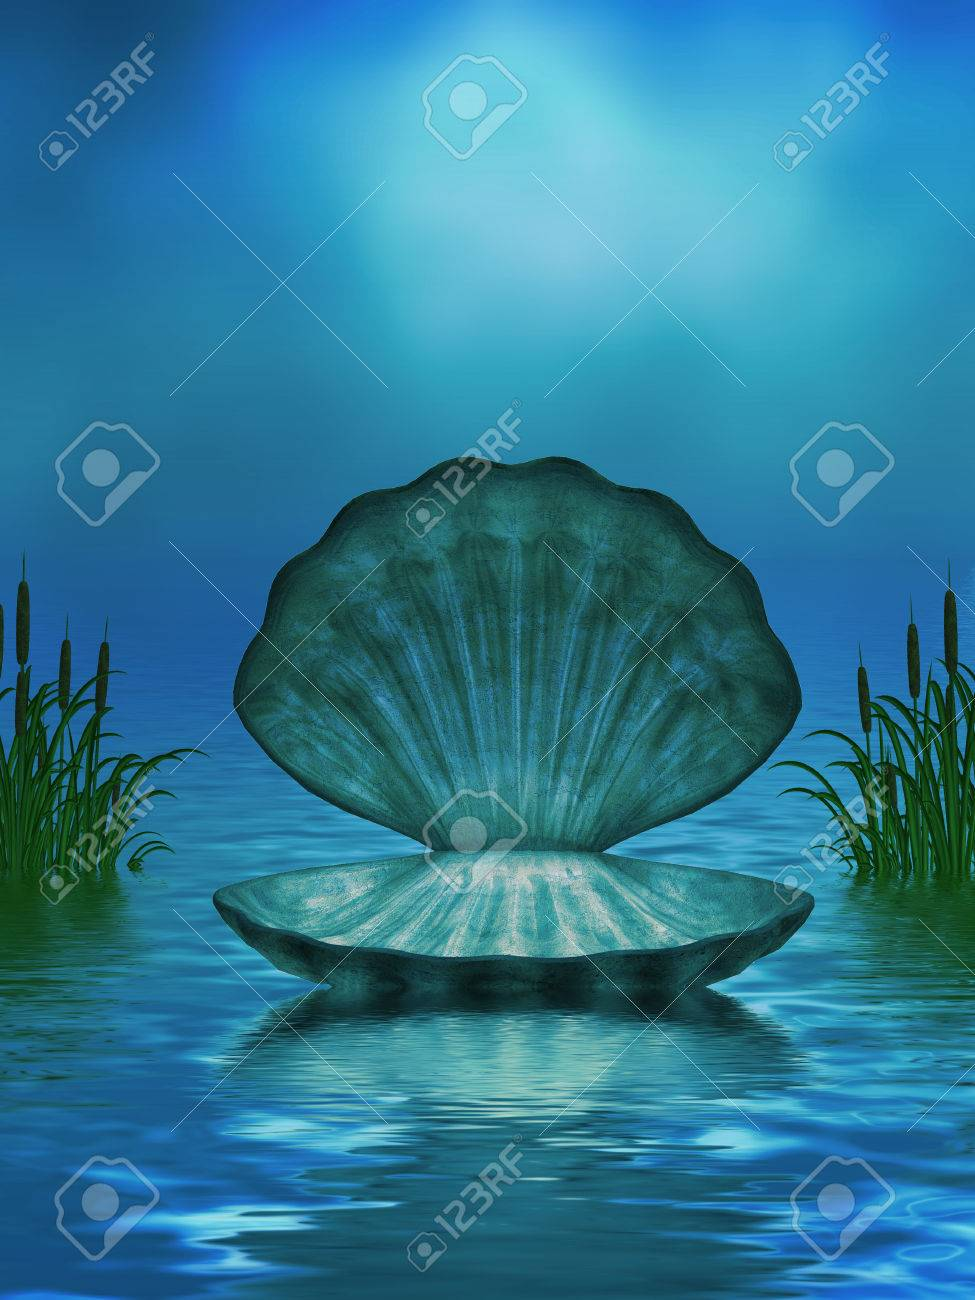 Beautiful ocean background with seashell and cattails Stock Photo - 25315528